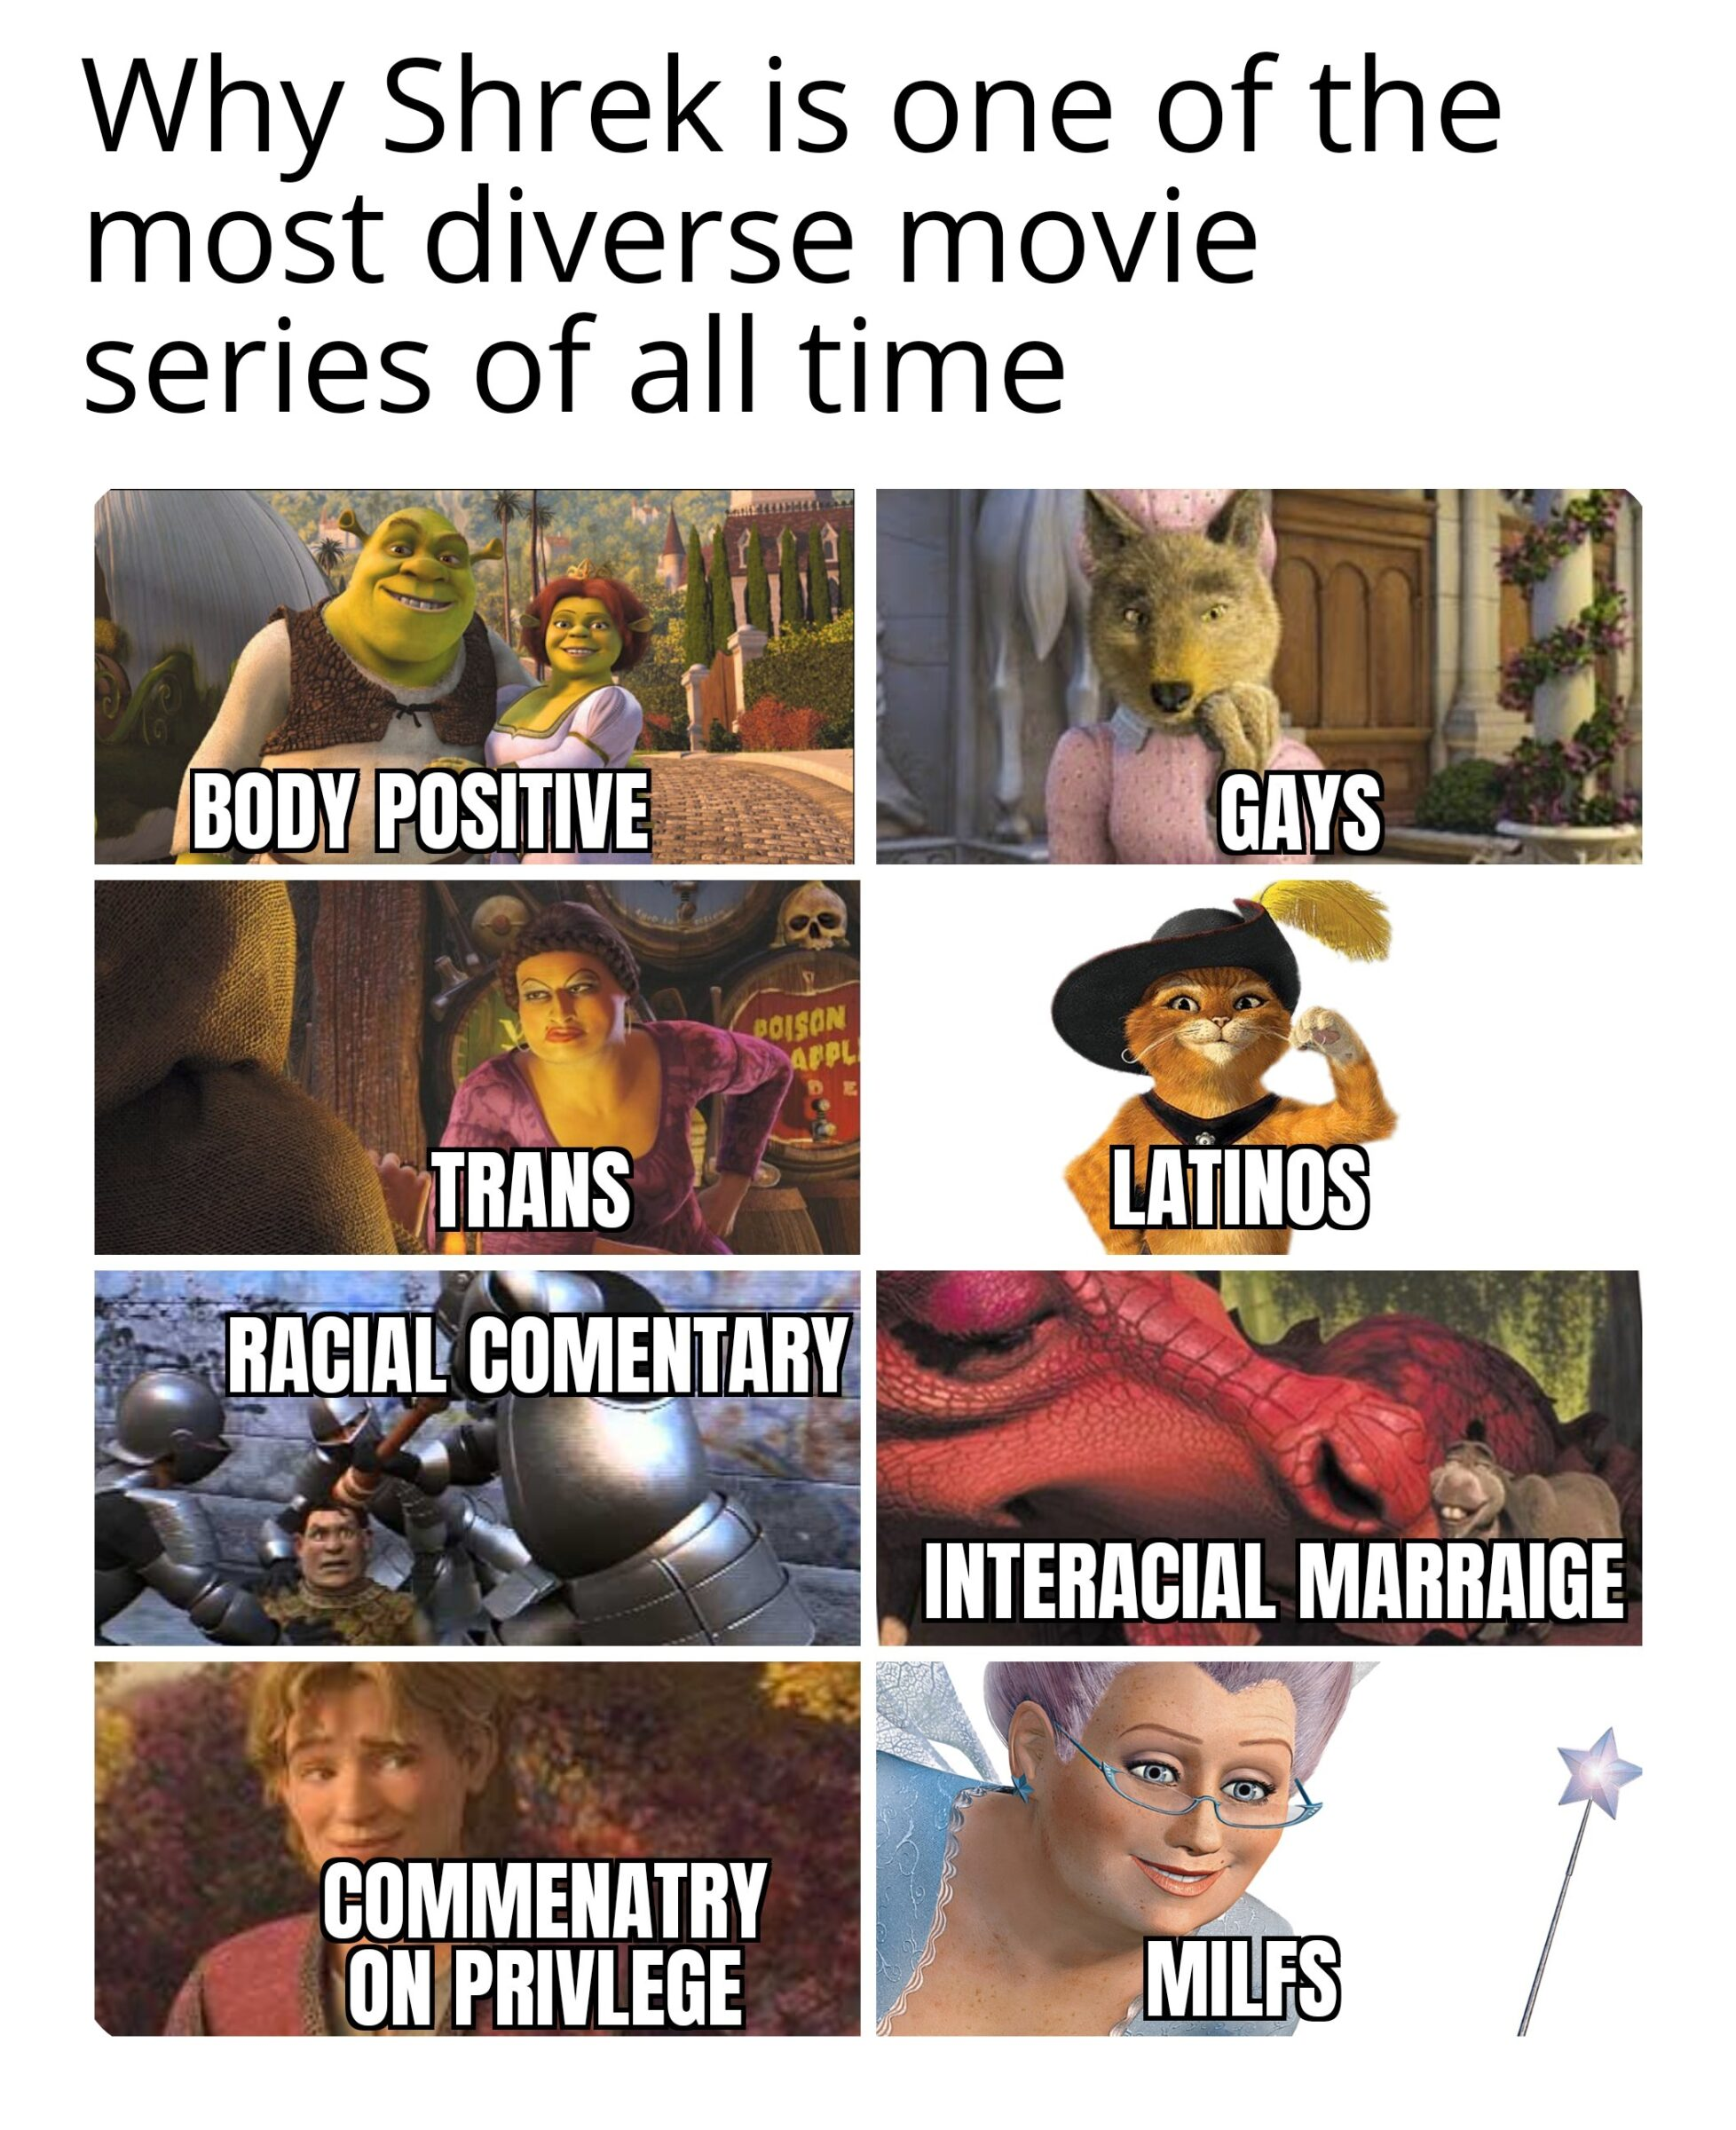 Dank, Shrek, Spain, Latino, Spanish, Boots Dank Memes Dank, Shrek, Spain, Latino, Spanish, Boots text: Why Shrek is one of the most diverse movie series of all time BODY POSITIVE 01SON TRANS COMMENATRY 0N PRIVLEGE INTERACIAL MARRAIGE MILFS